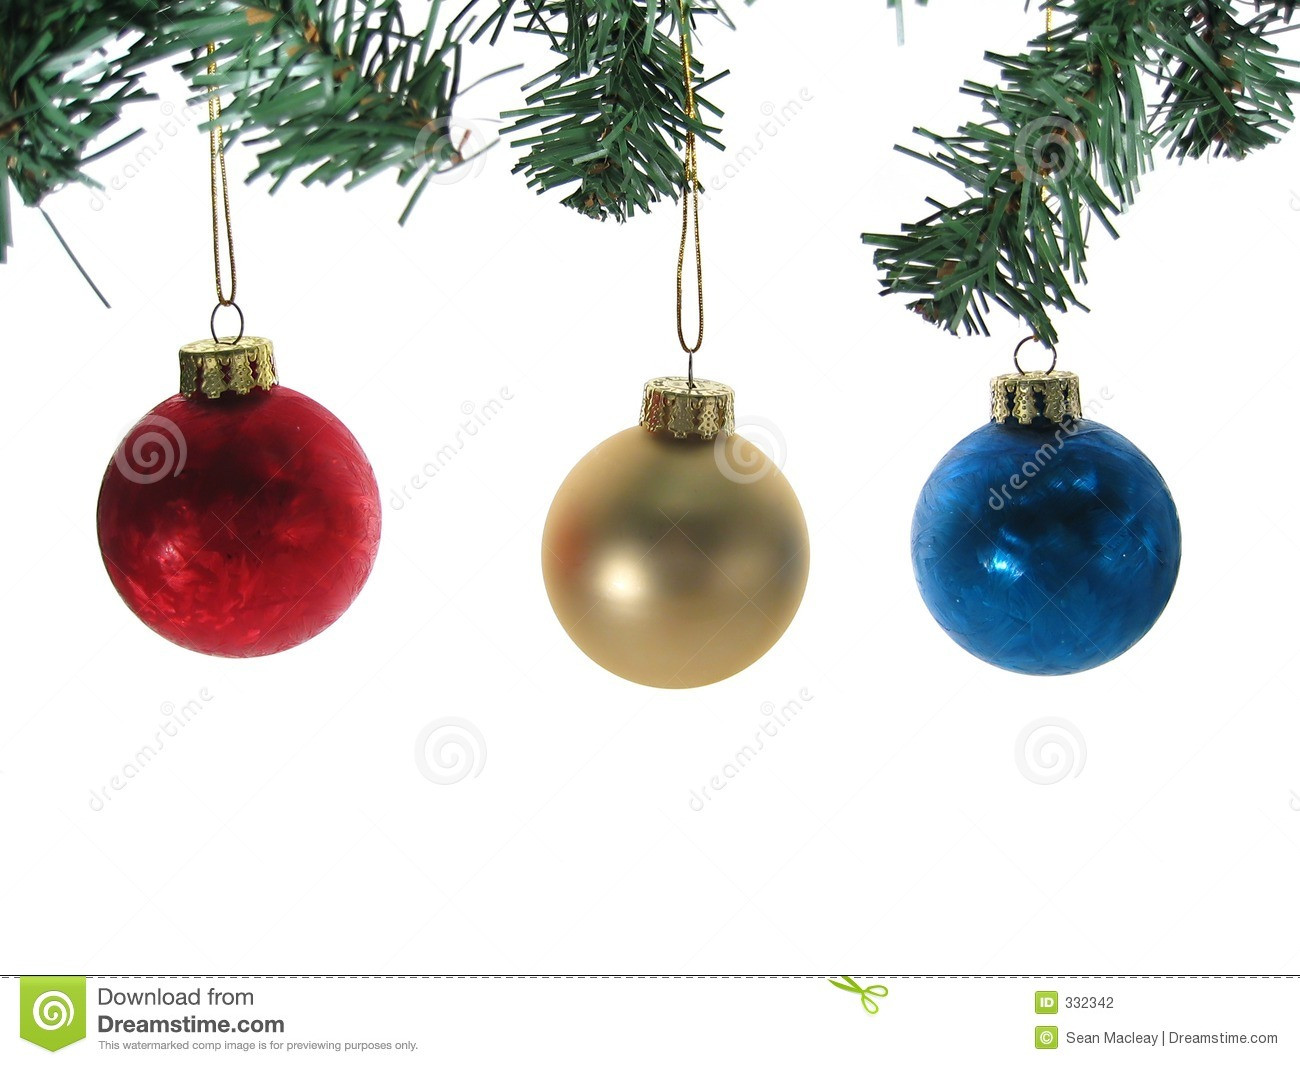 White Christmas Tree Balls New Christmas Tree Ball ornaments Invitation Template Of Awesome 48 Models White Christmas Tree Balls